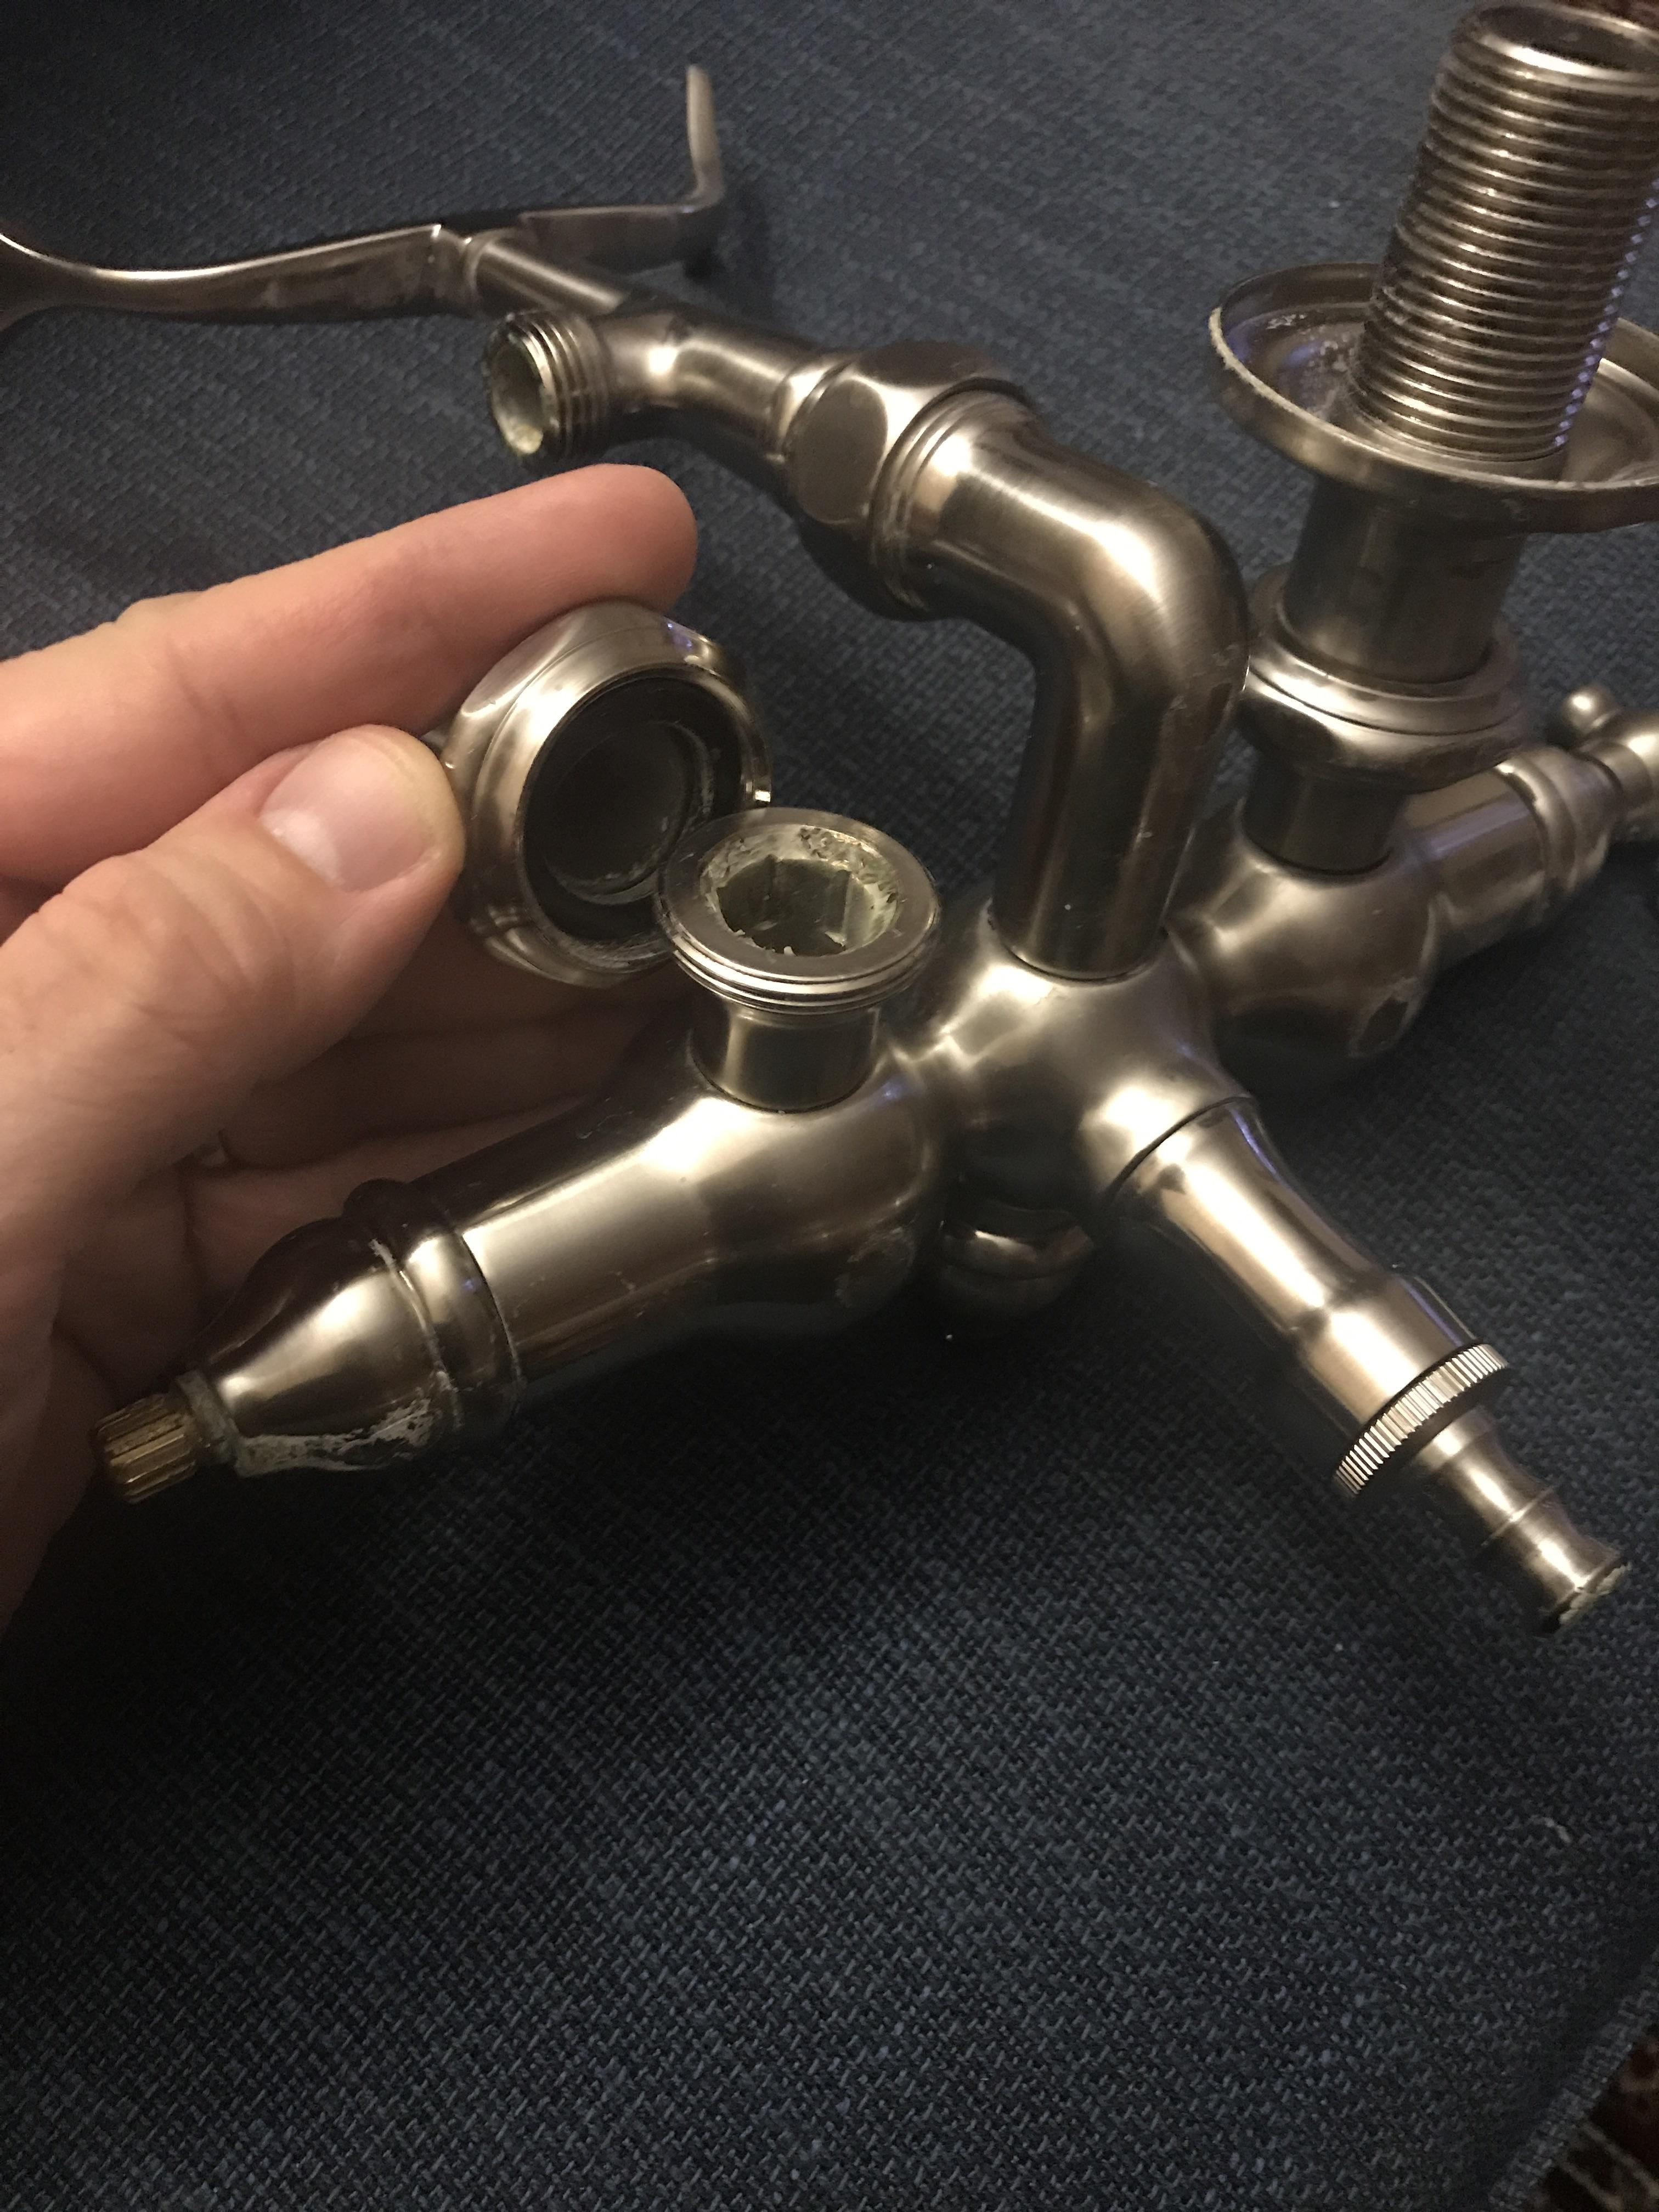 how can i replace the faucet stem parts